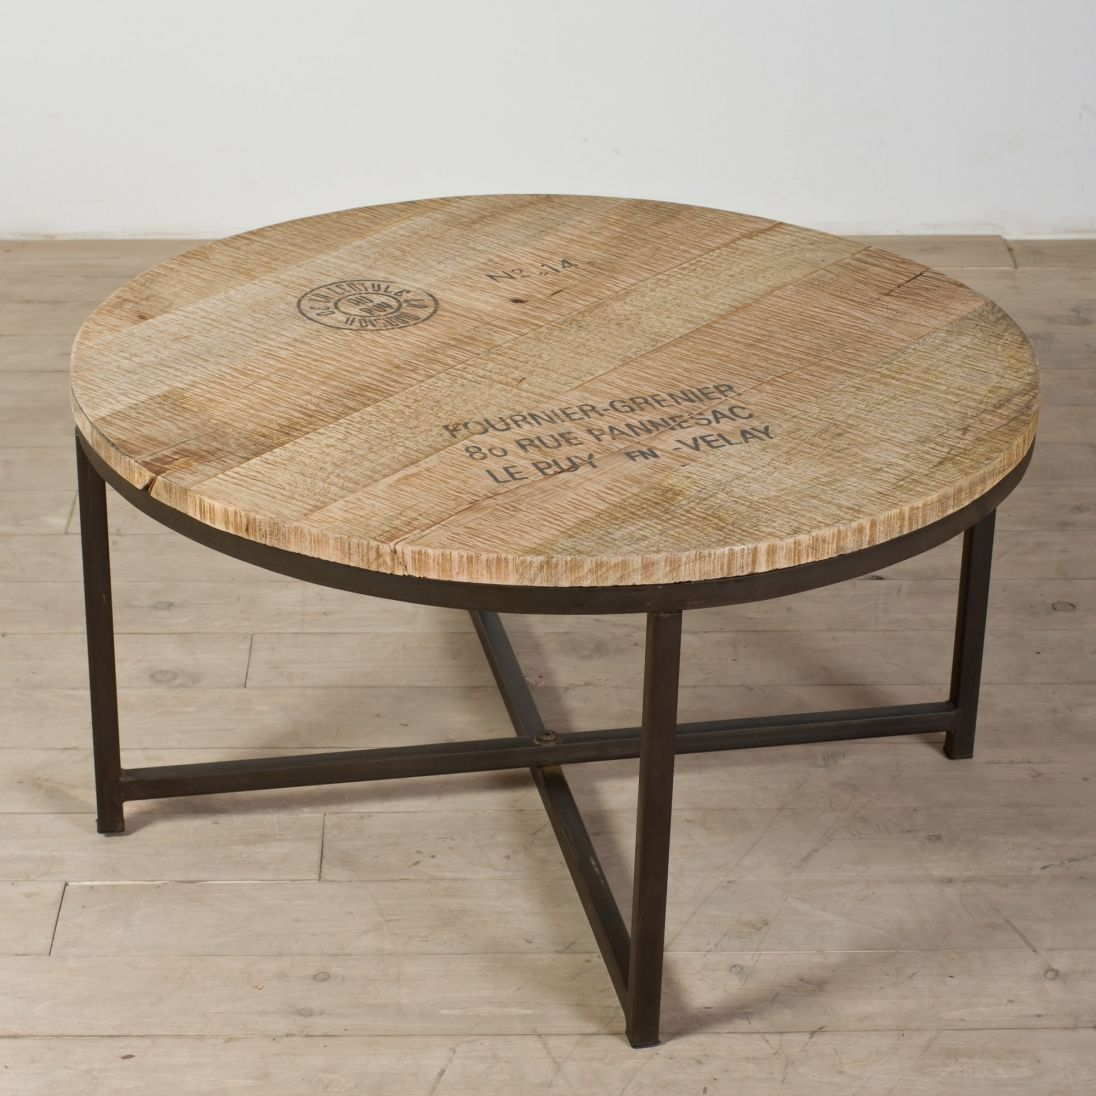 Reclaimed Wood Coffee Table Nj   Most Popular Interior Paint Colors Check  More At Http: